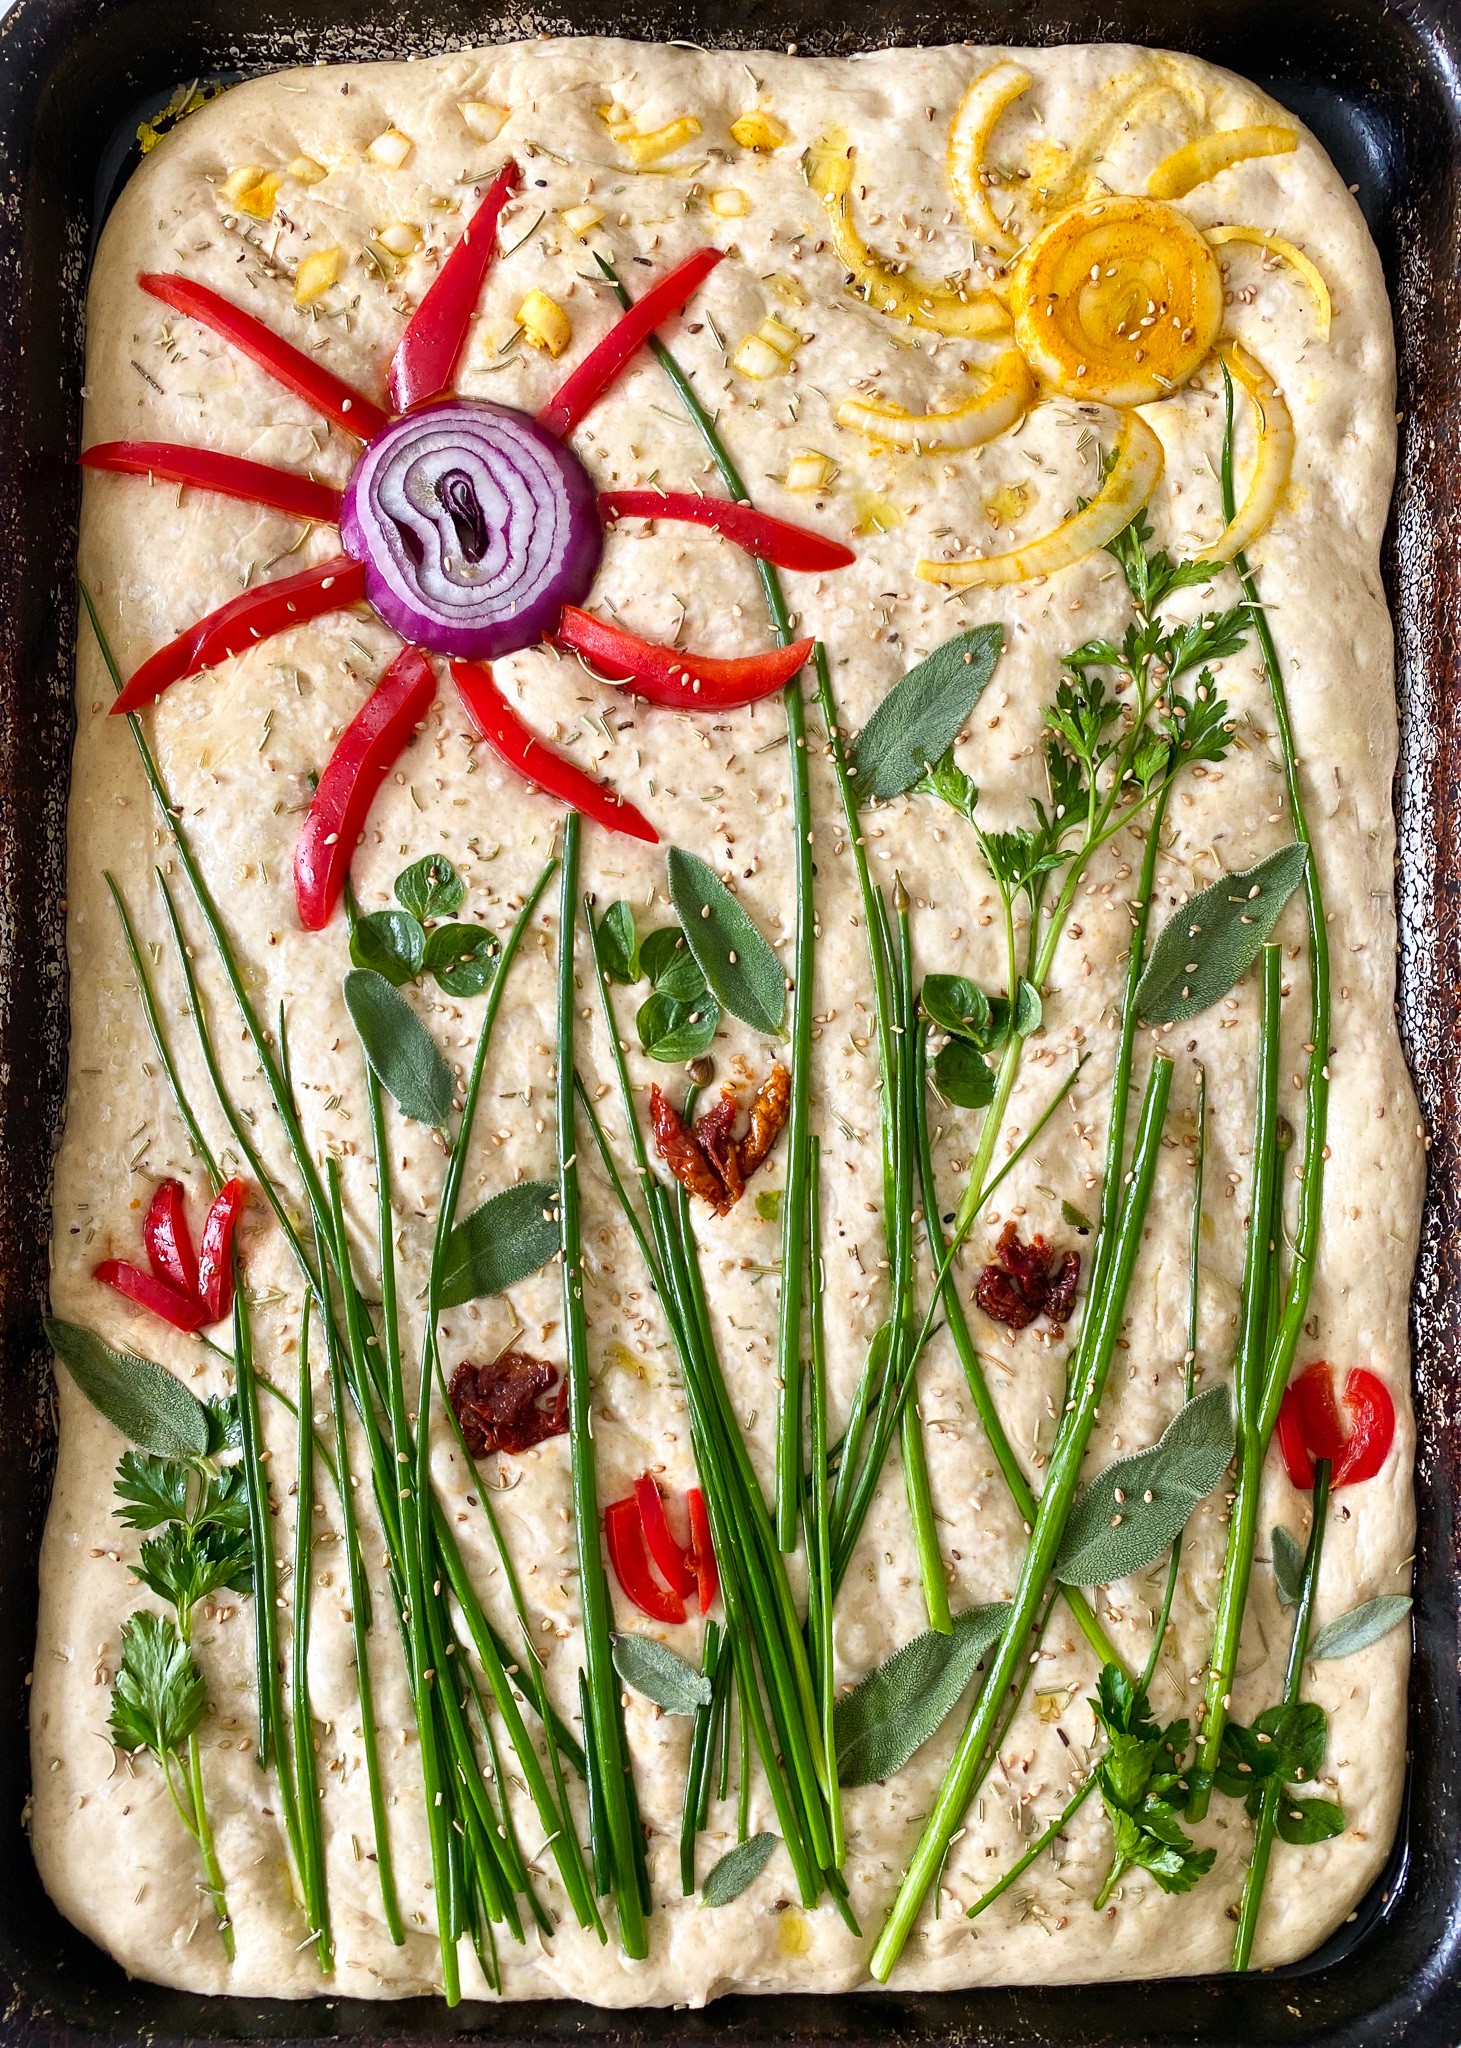 focaccia art before baking